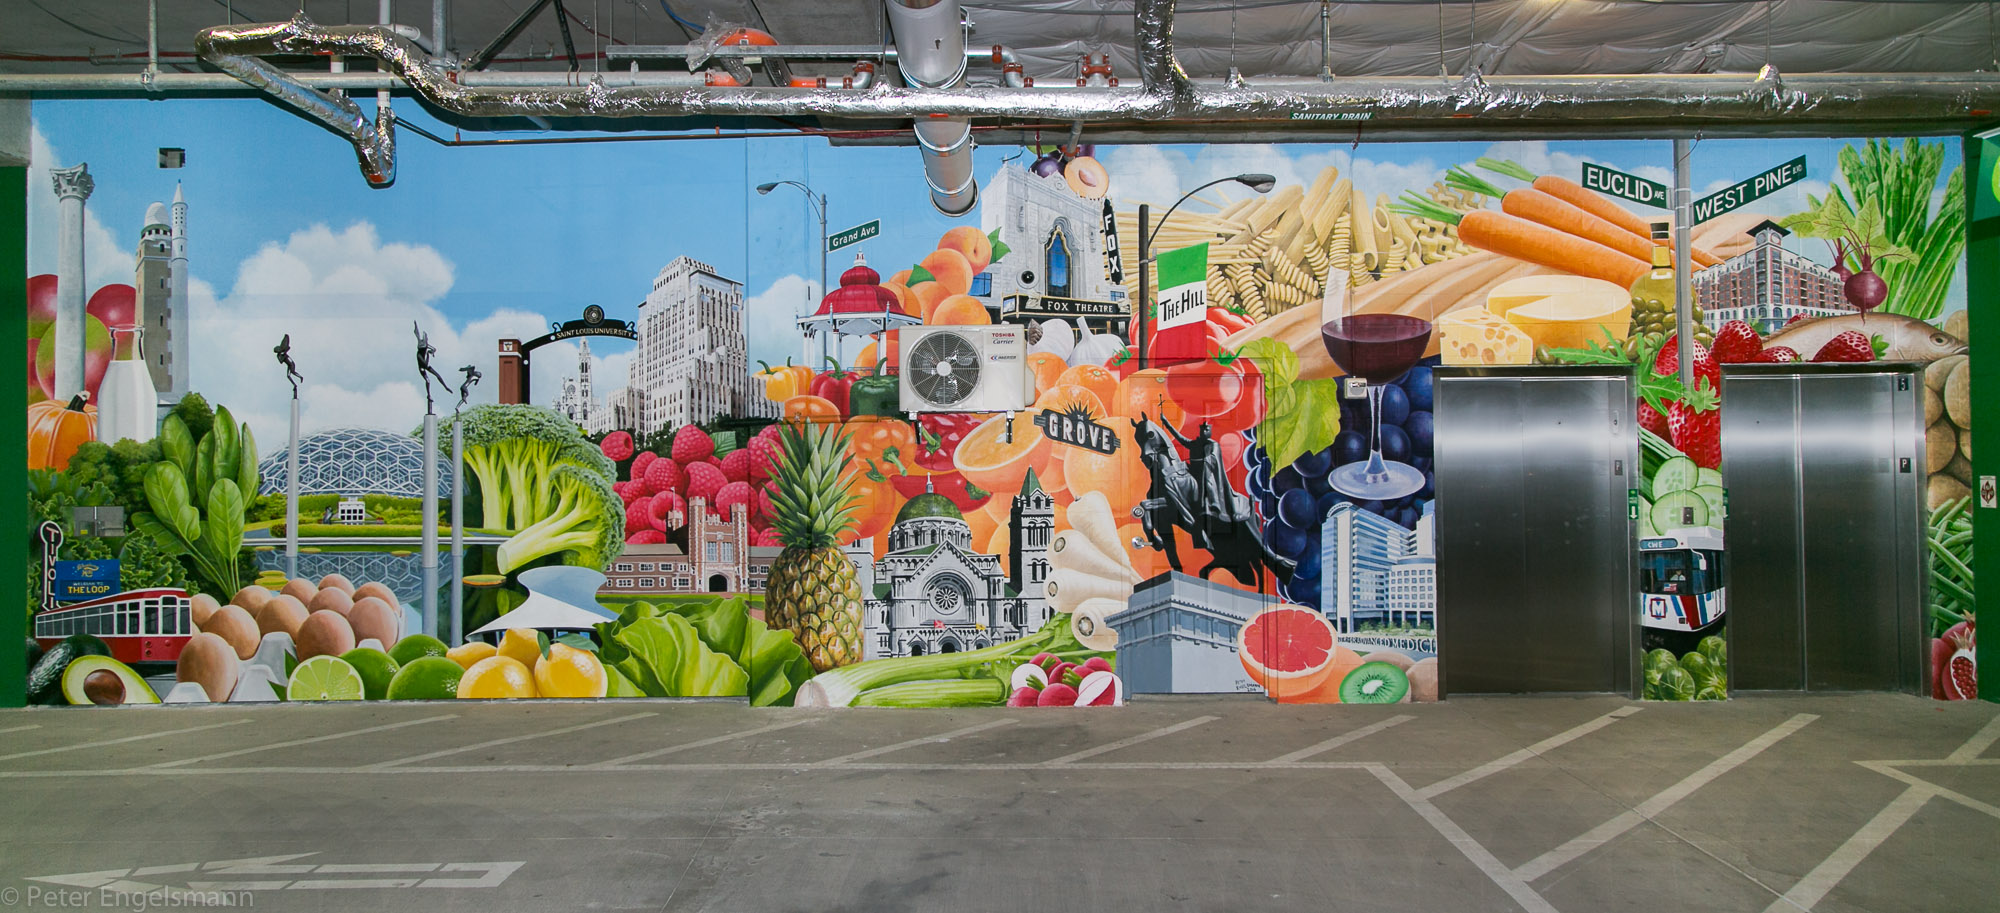 Whole Foods Mural